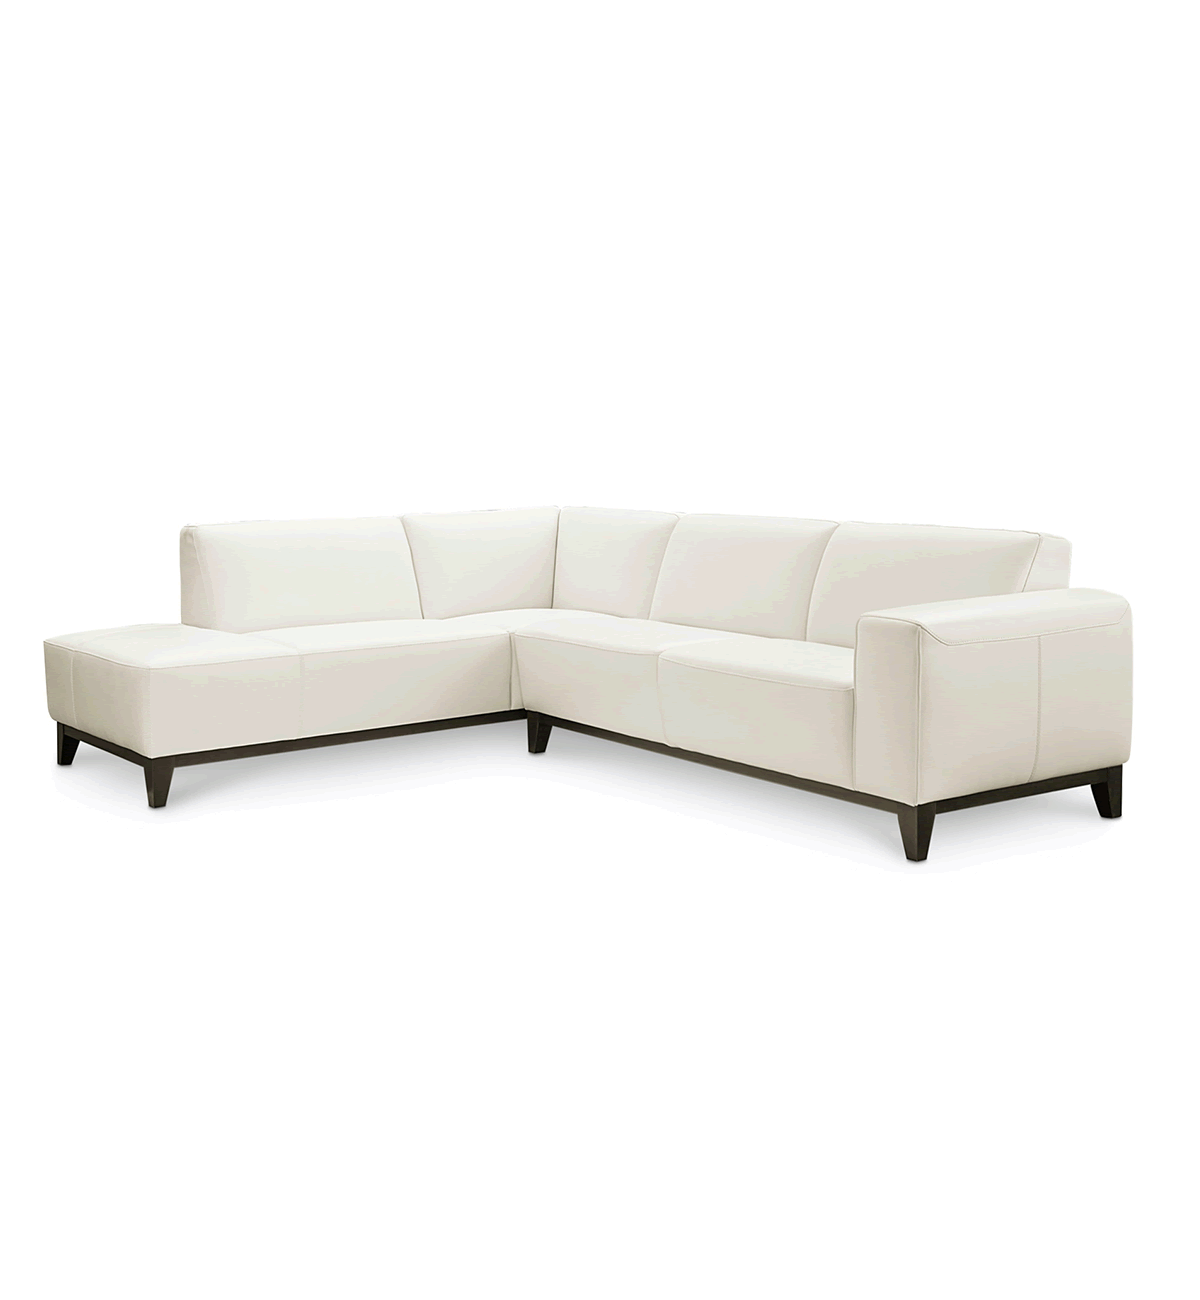 Couches And Sofas Loveseats Couches And Sofas Macy 39s